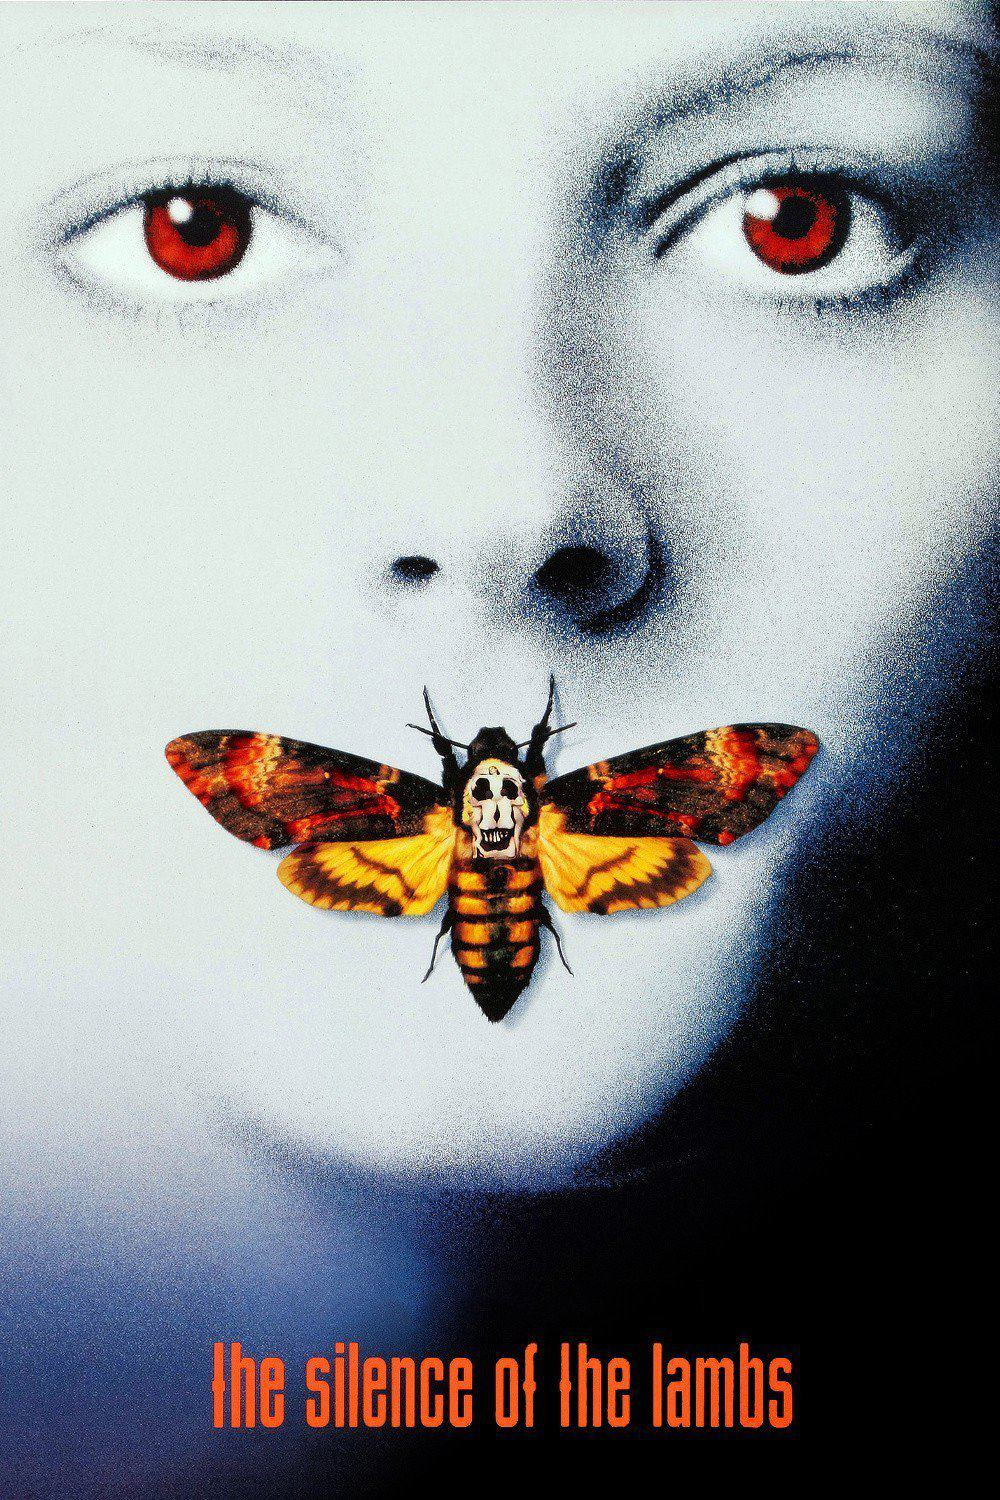 The Silence of the Lambs, 1991